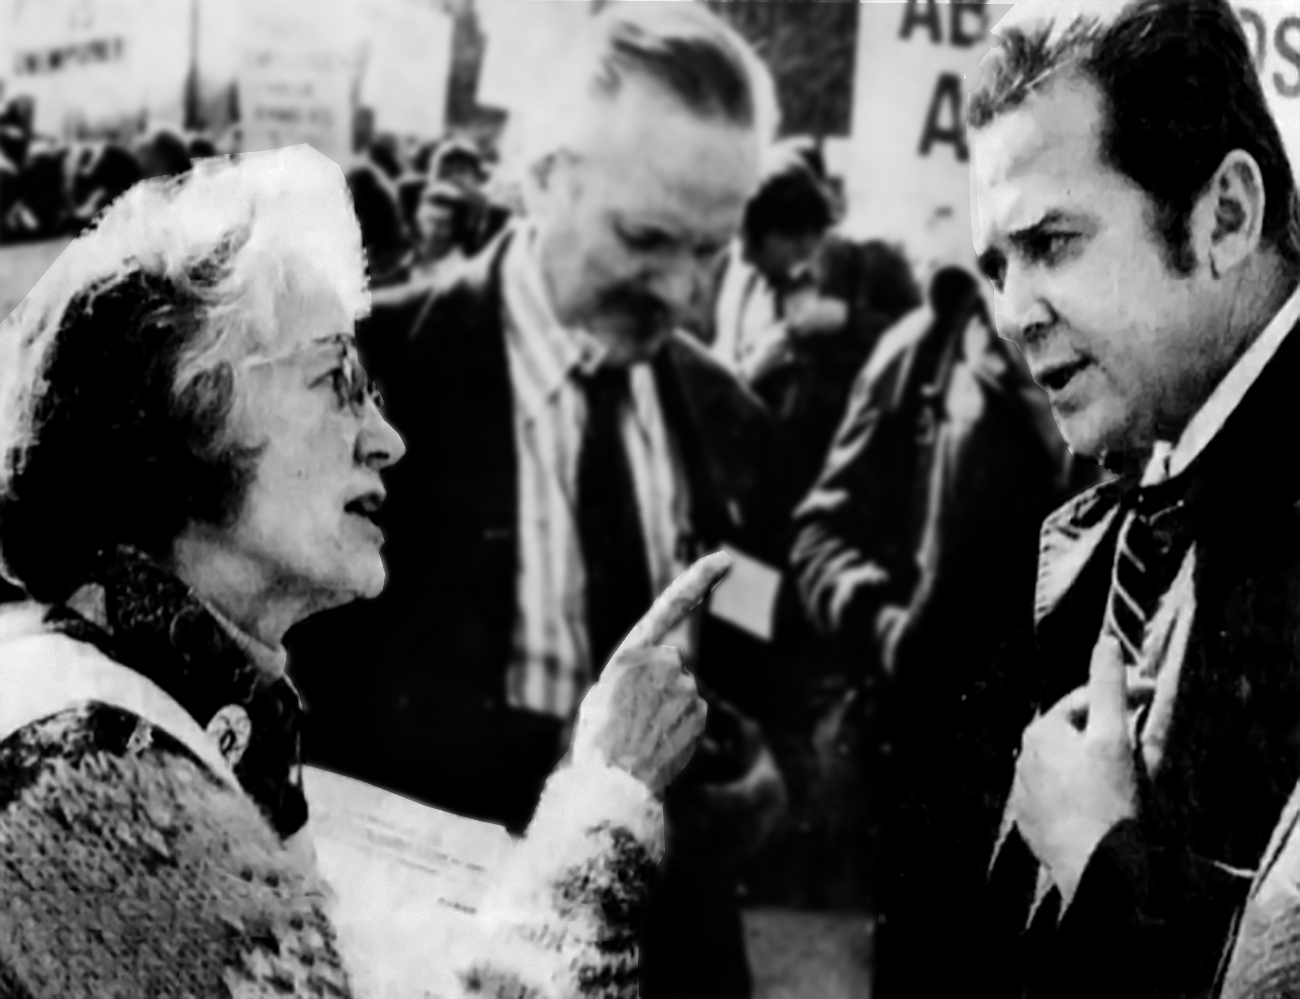 Irene Dickinson confronts nuclear union boss